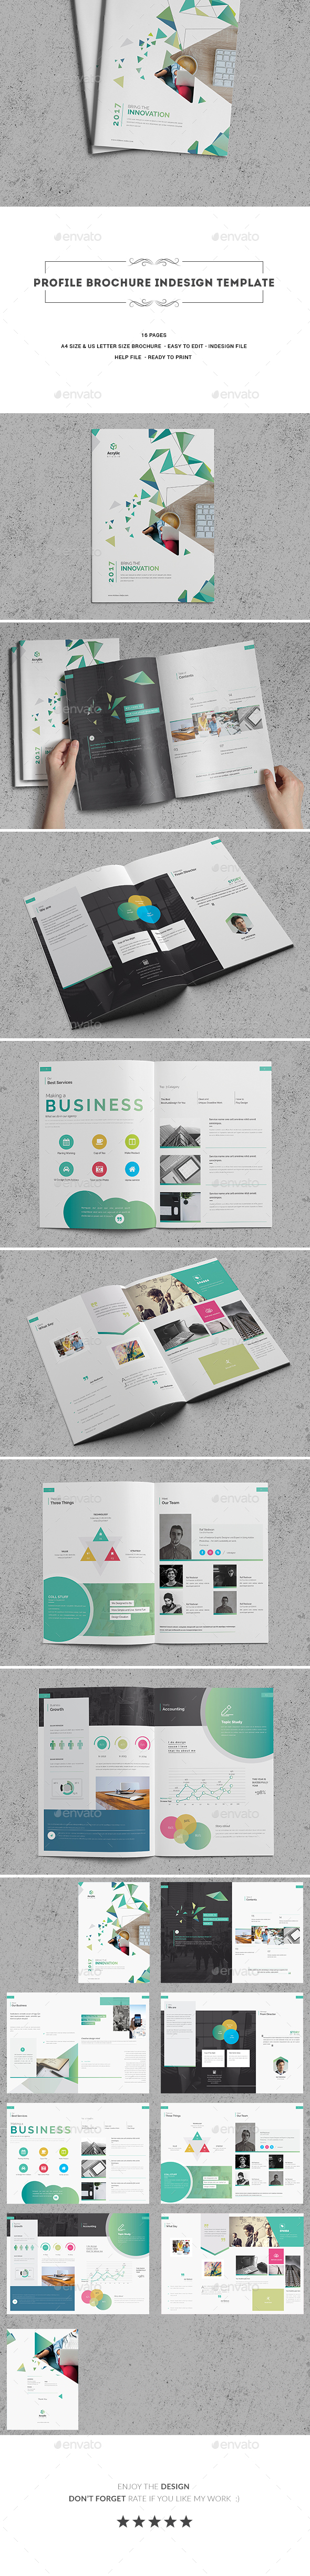 Profile Brochure Indesign Template - Corporate Brochures